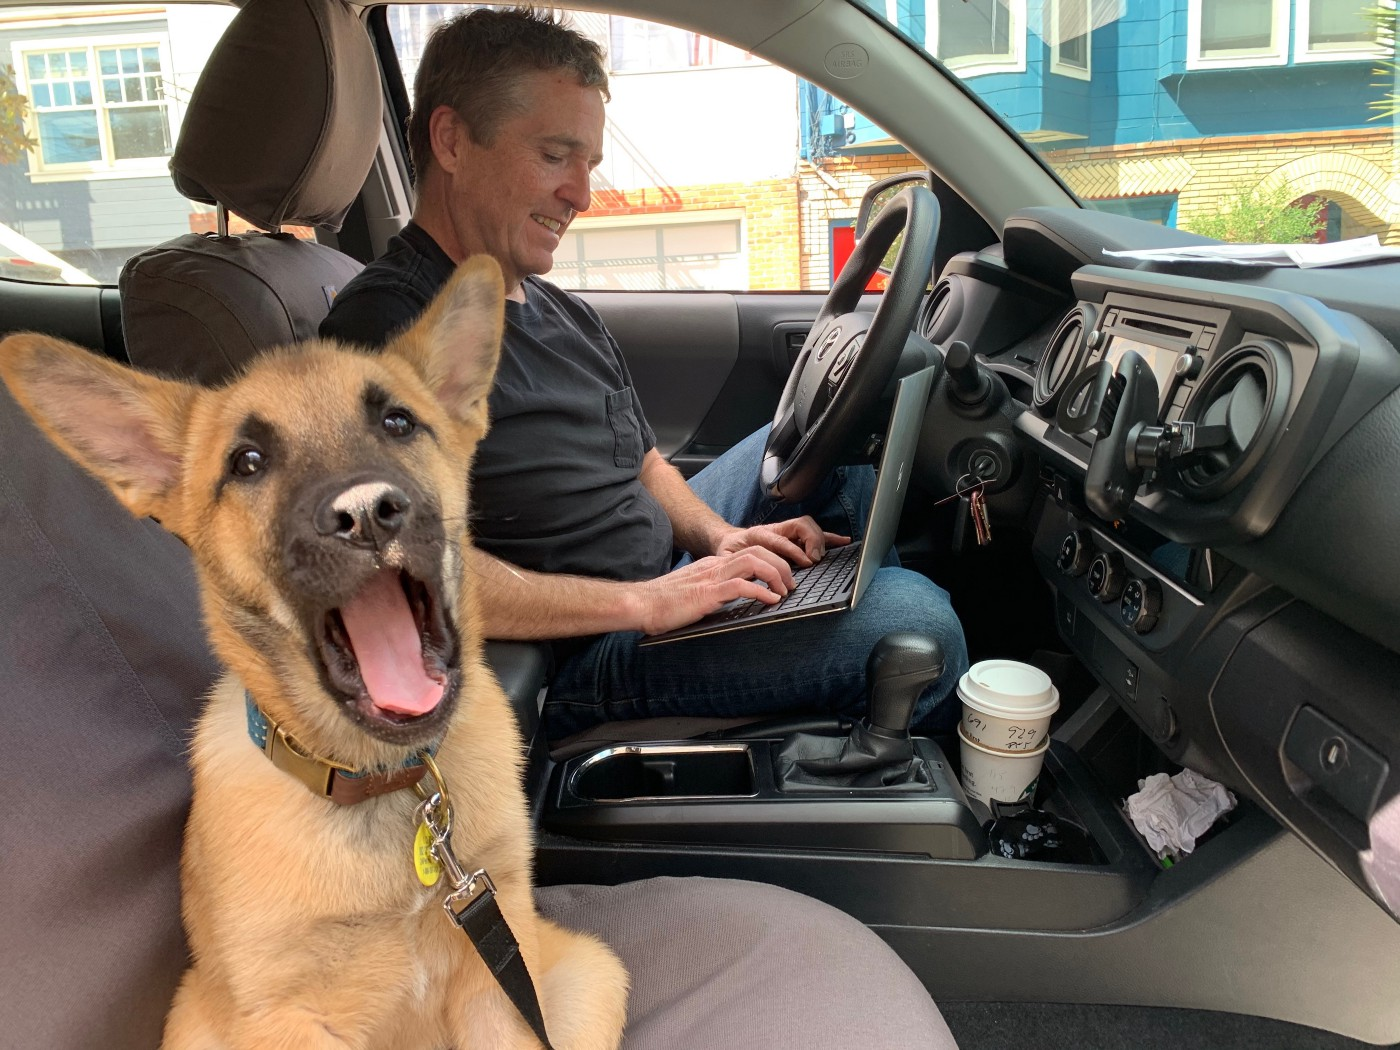 American Giant CEO Bayard Winthrop working on his laptop out of his truck with his 3-month-old puppy.